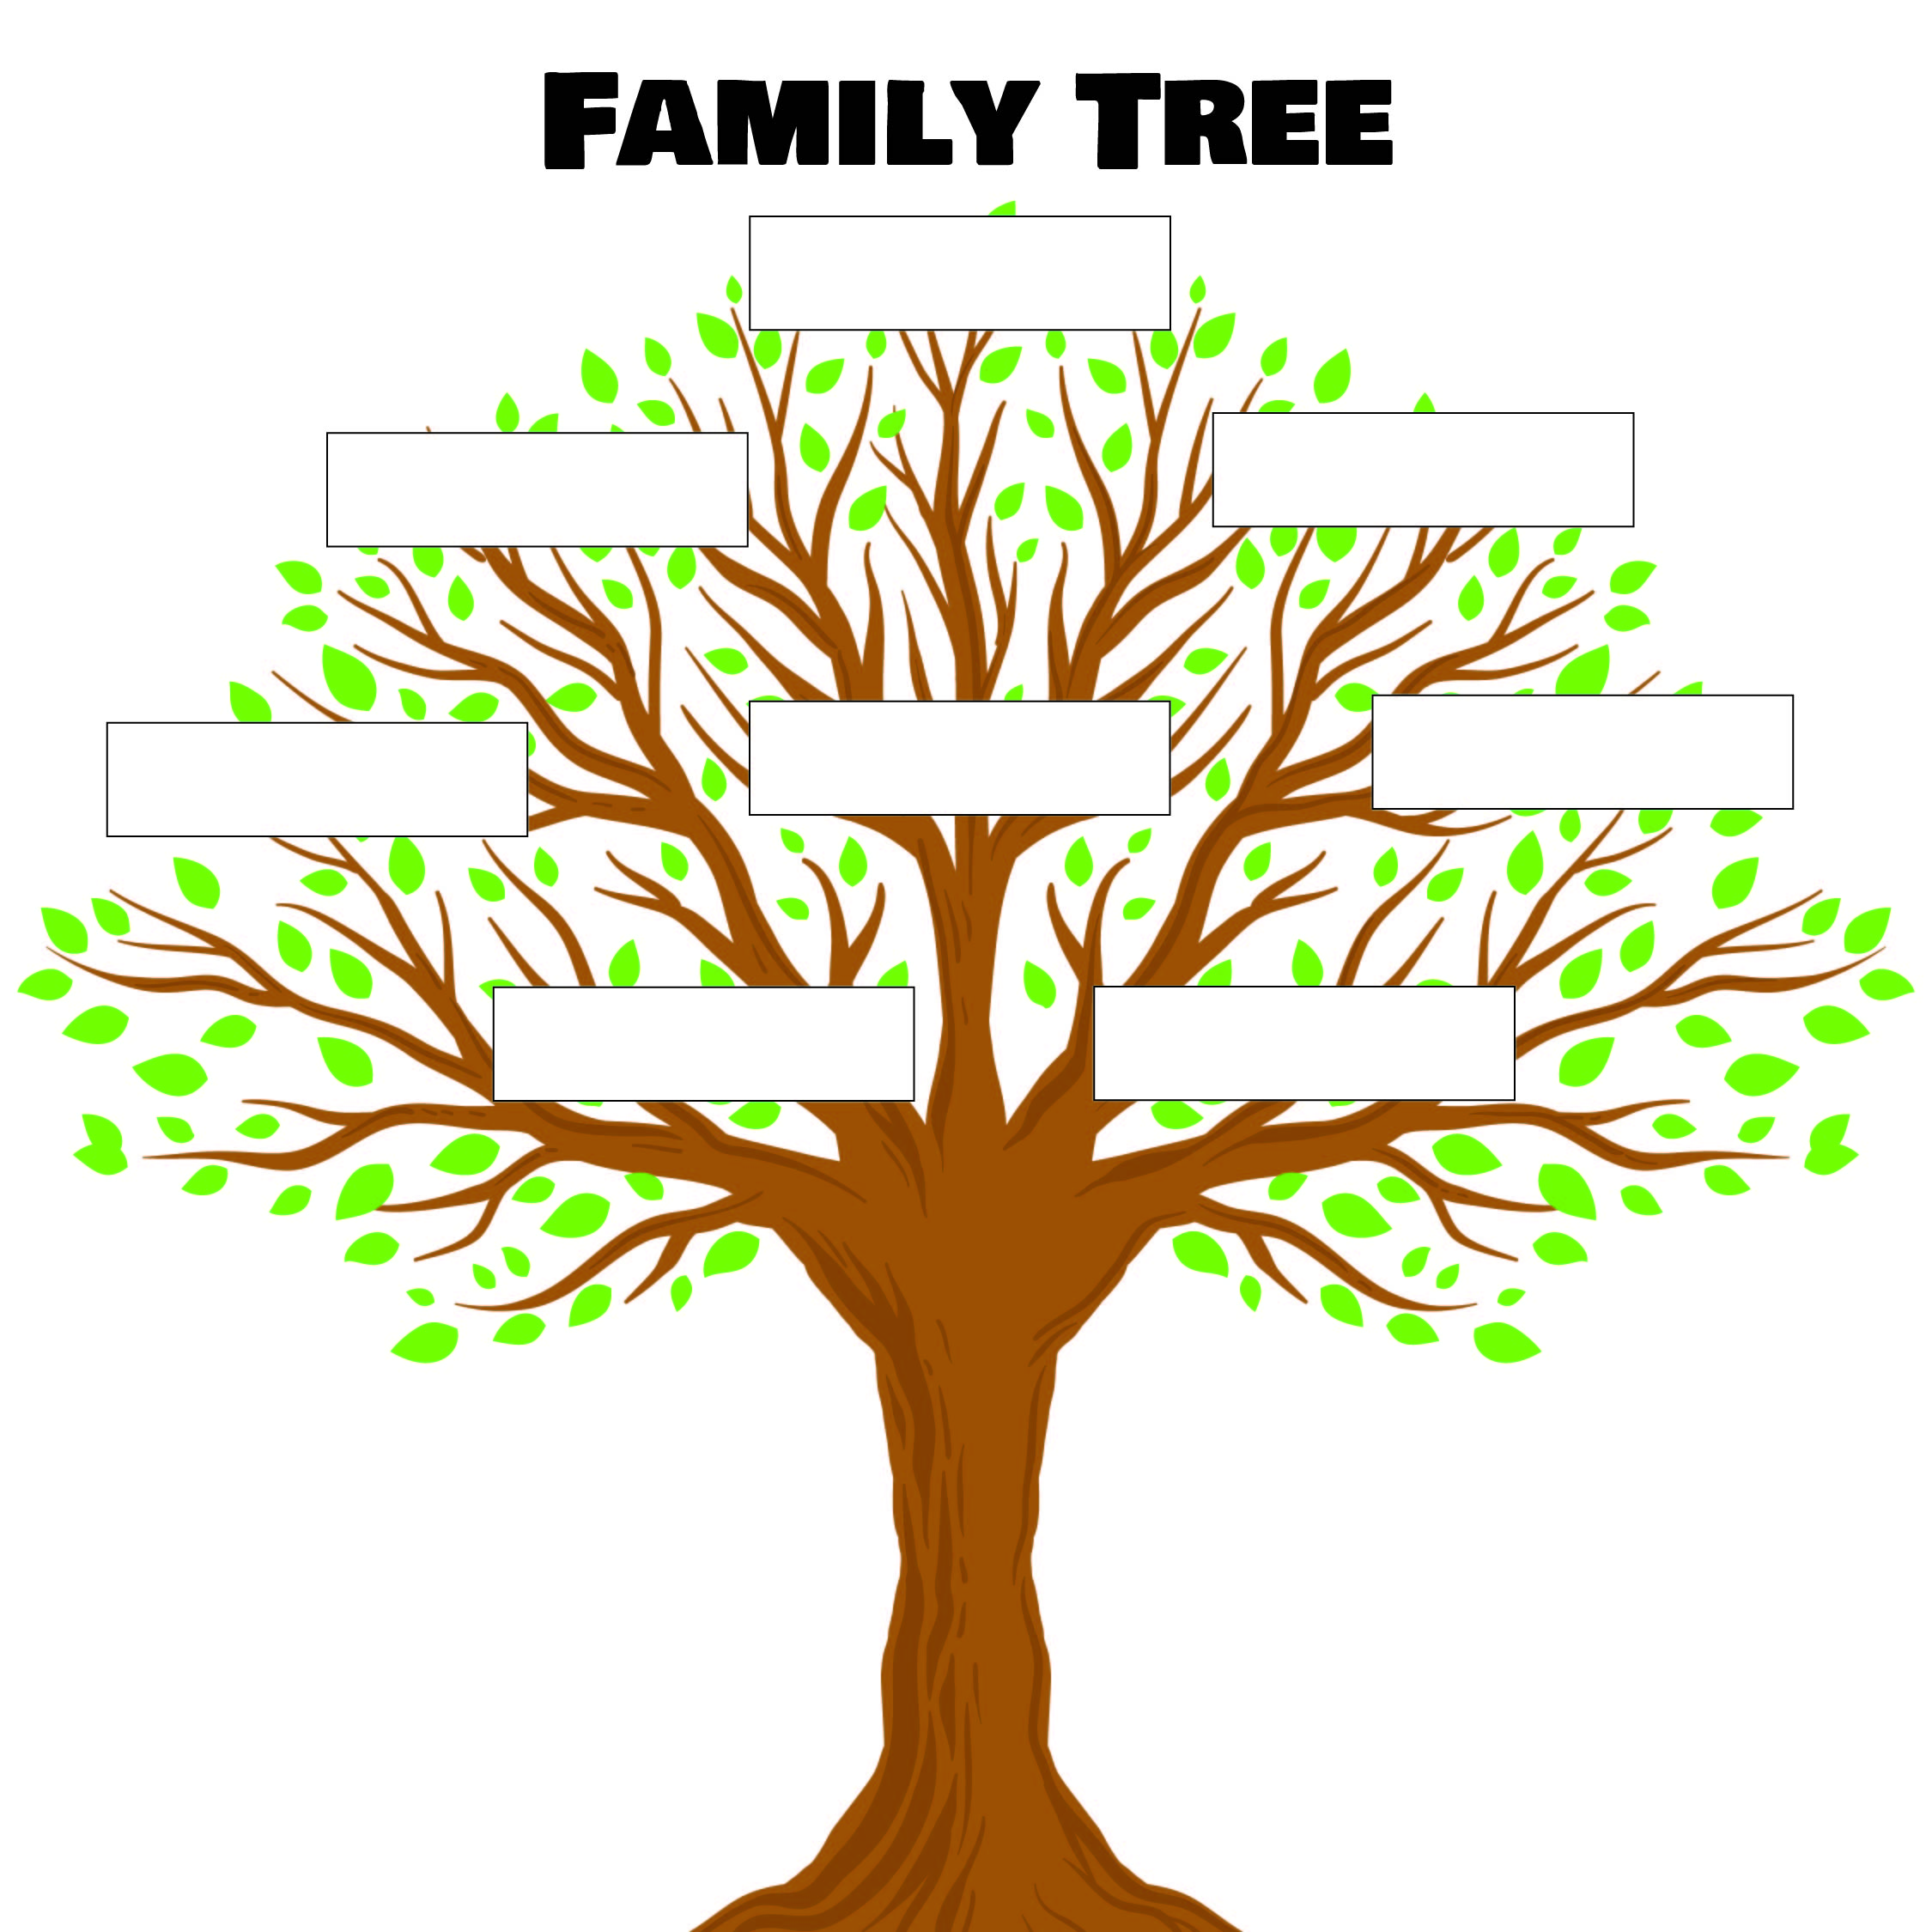 21 Best Free Printable Family Tree Template Kids - printablee.com Inside Fill In The Blank Family Tree Template